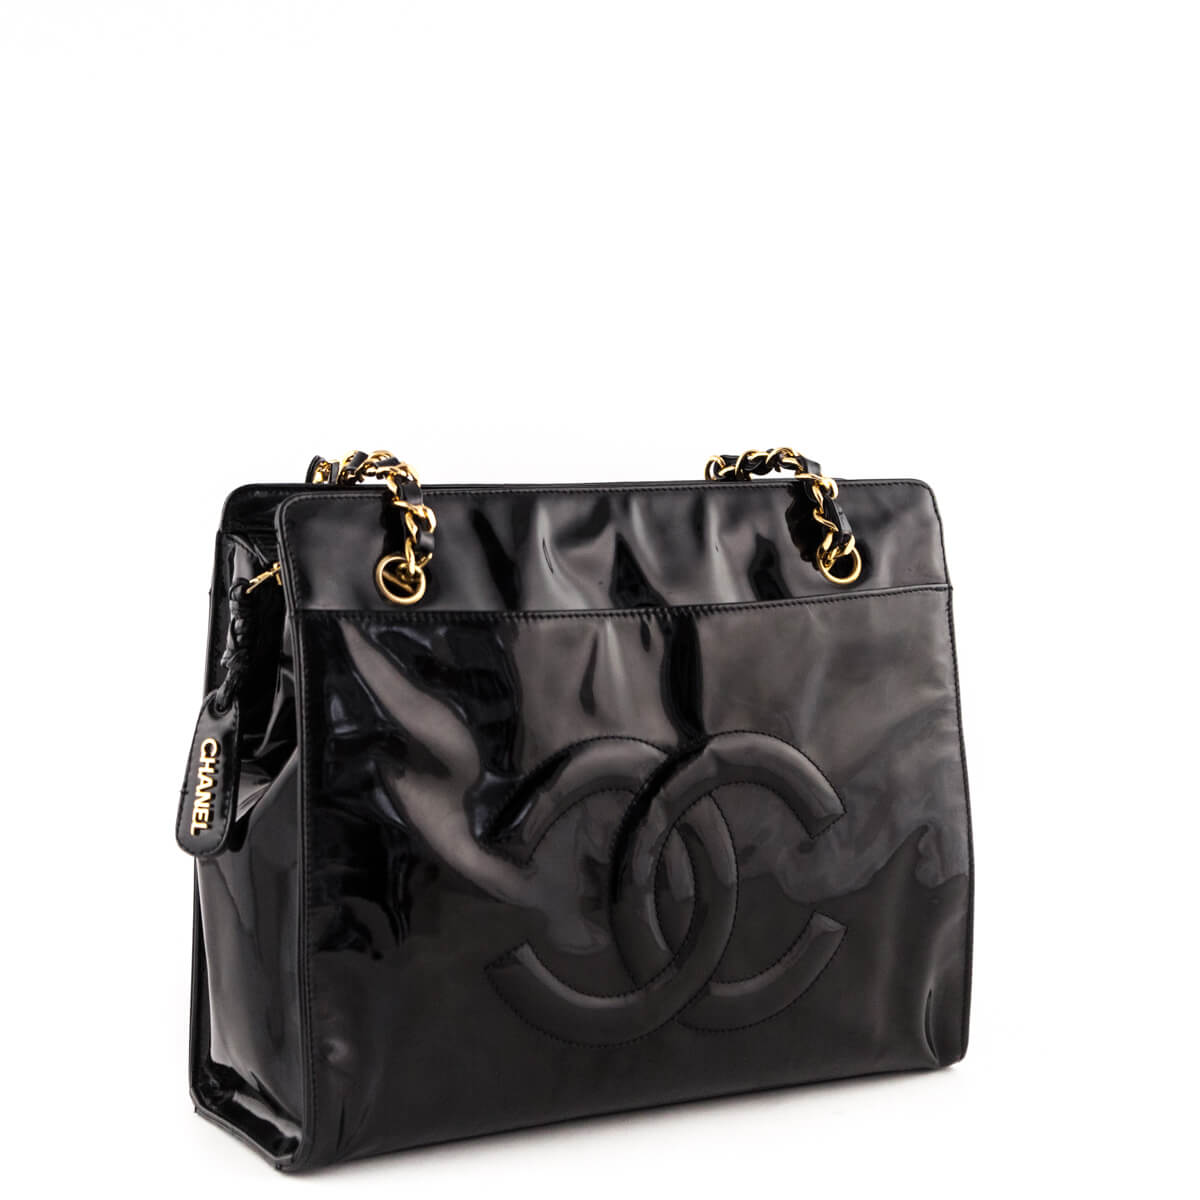 3c9e99c4bf8a ... Chanel Black Patent Vintage Timeless CC Tote - LOVE that BAG - Preowned  Authentic Designer Handbags ...